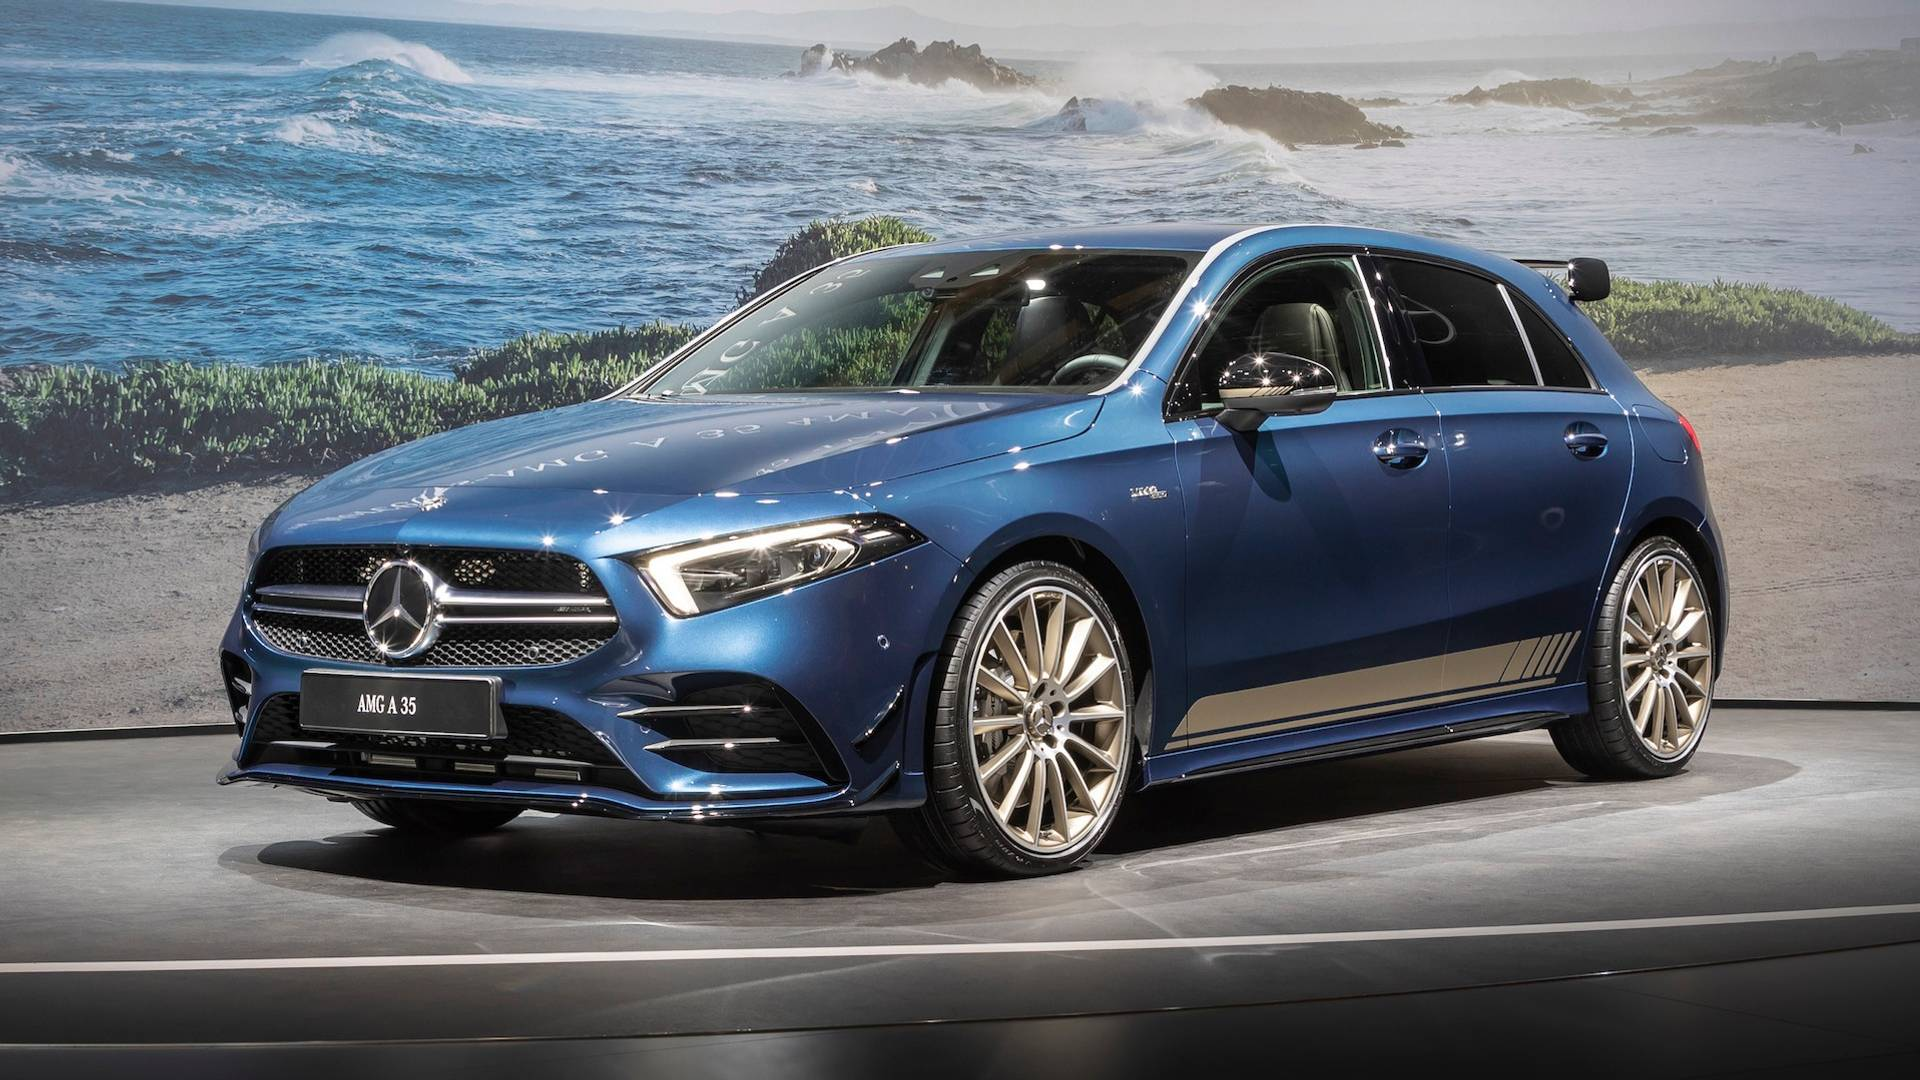 2019 Mercedes Amg A35 Debuts In Paris Shows Its Sporty Side